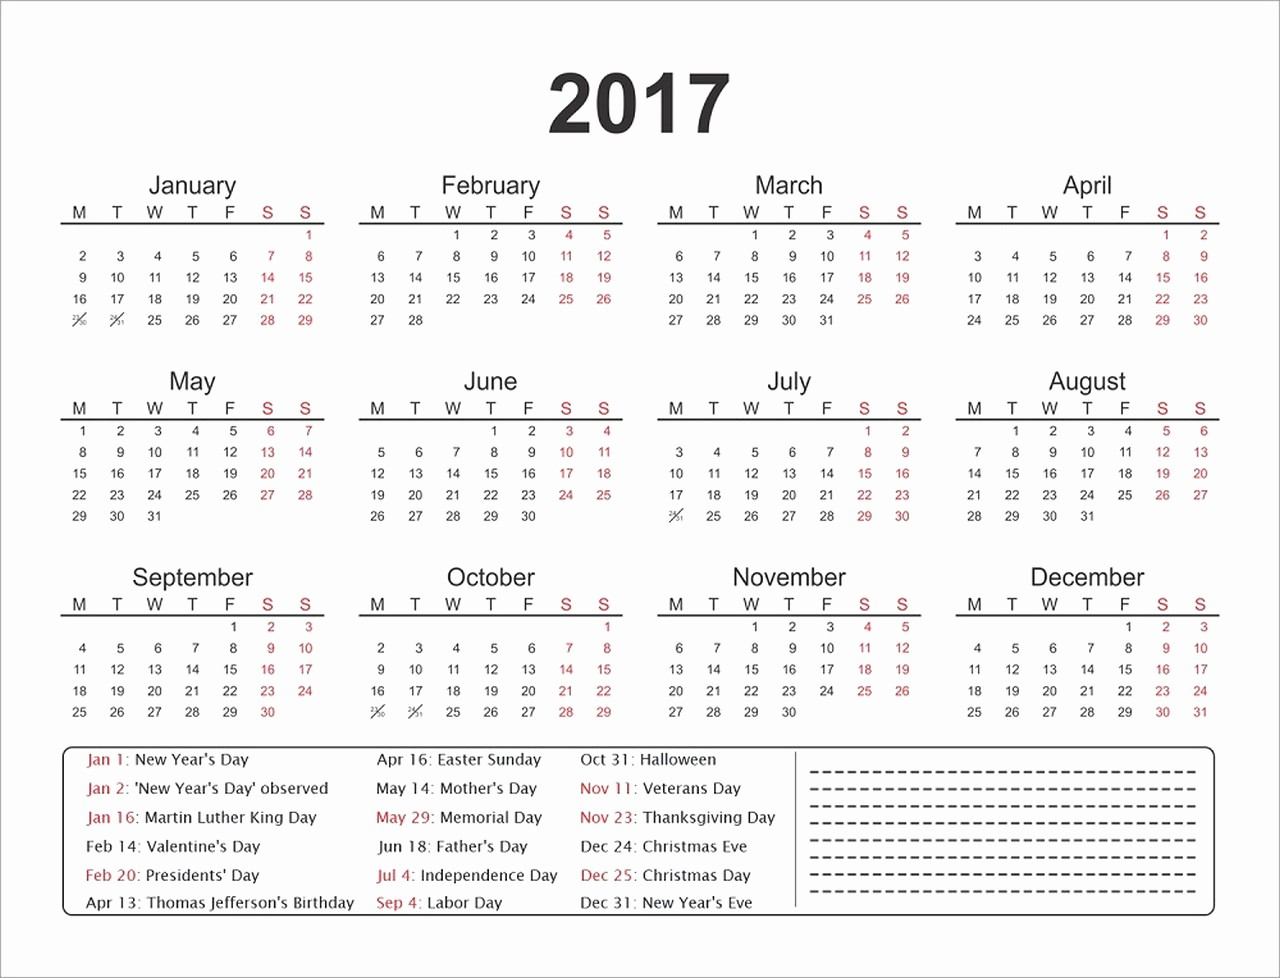 One Page Year Calendar 2017 Unique 1 Page Calendars 2017